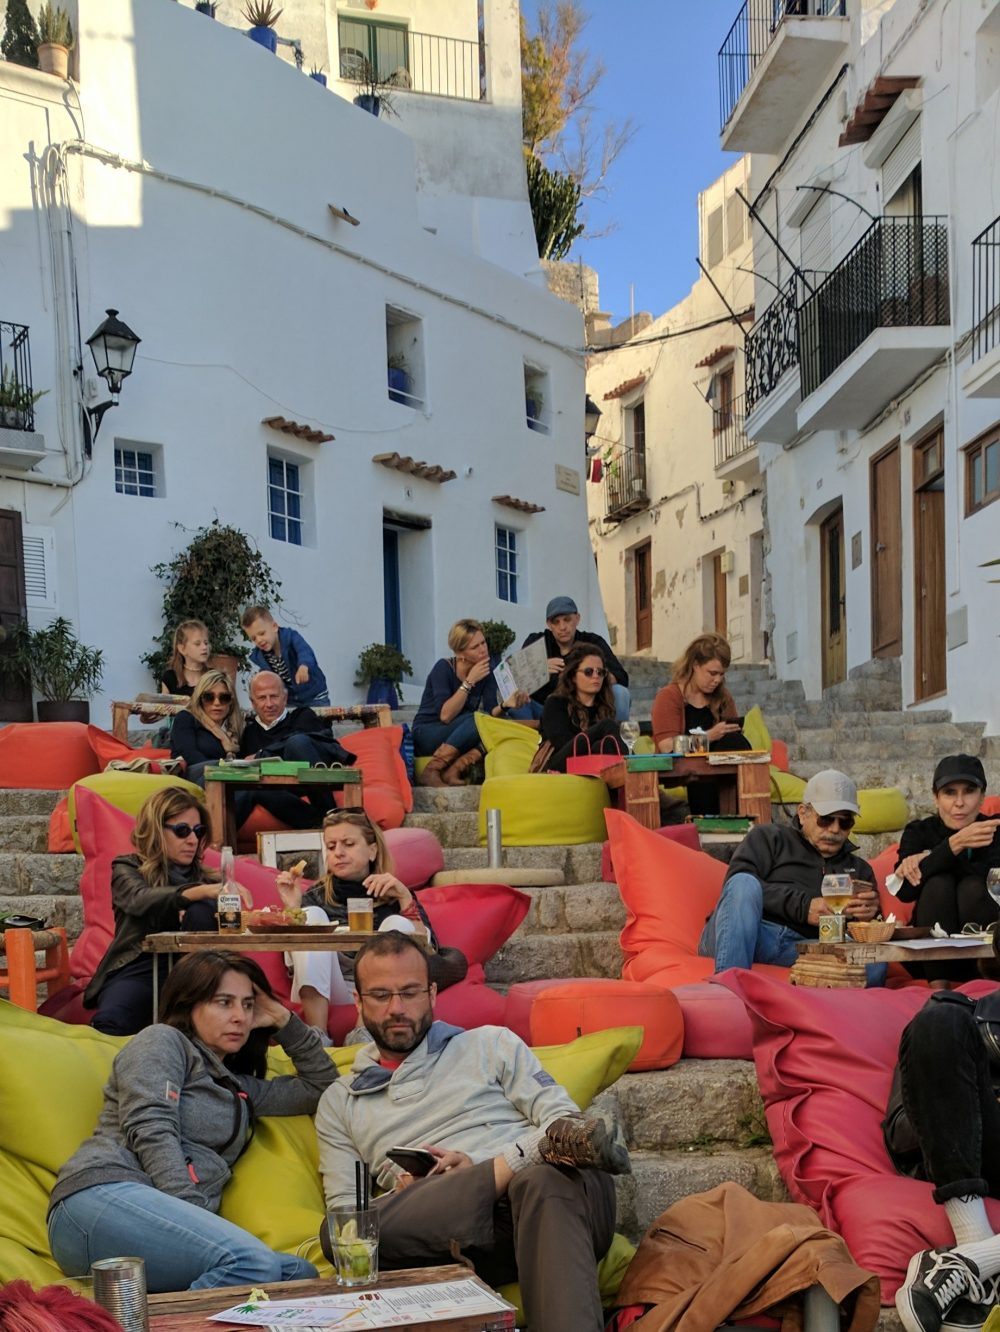 Whitney's Wonderland UK Top Travel Expert in Dalt Vila Old Town Ibiza